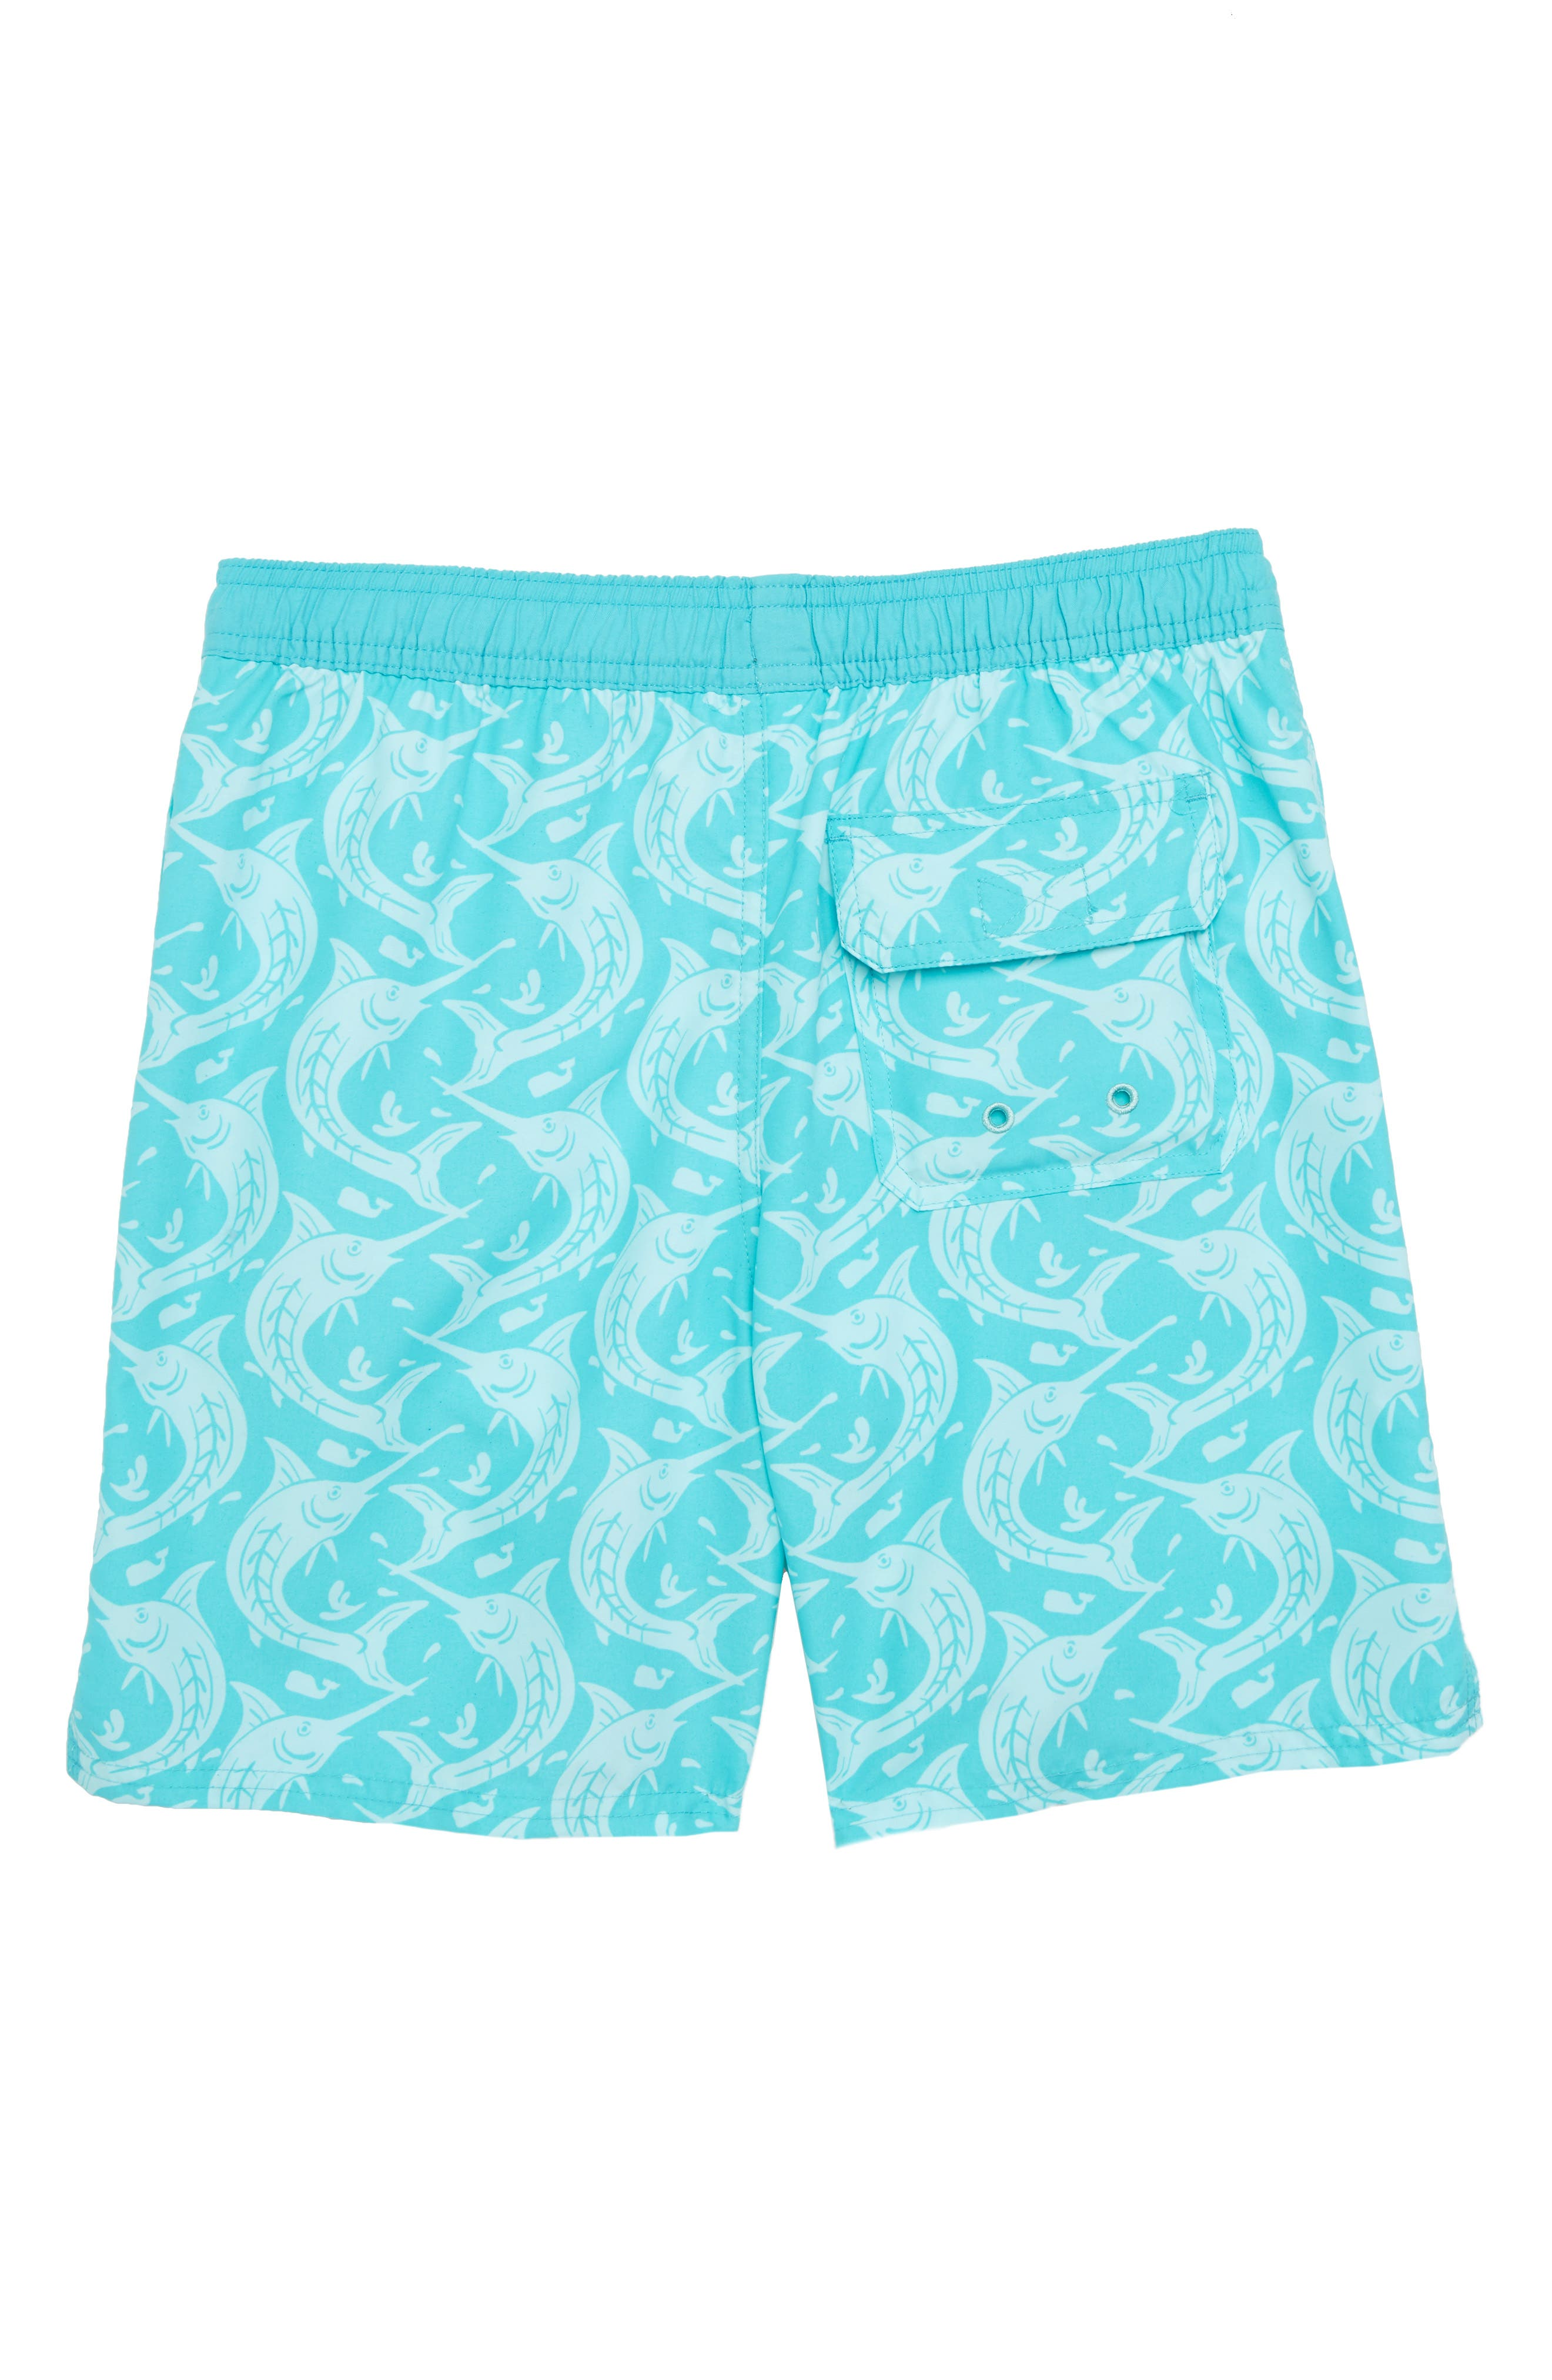 Marlin Out of Water Swim Trunks,                             Alternate thumbnail 2, color,                             Turqs